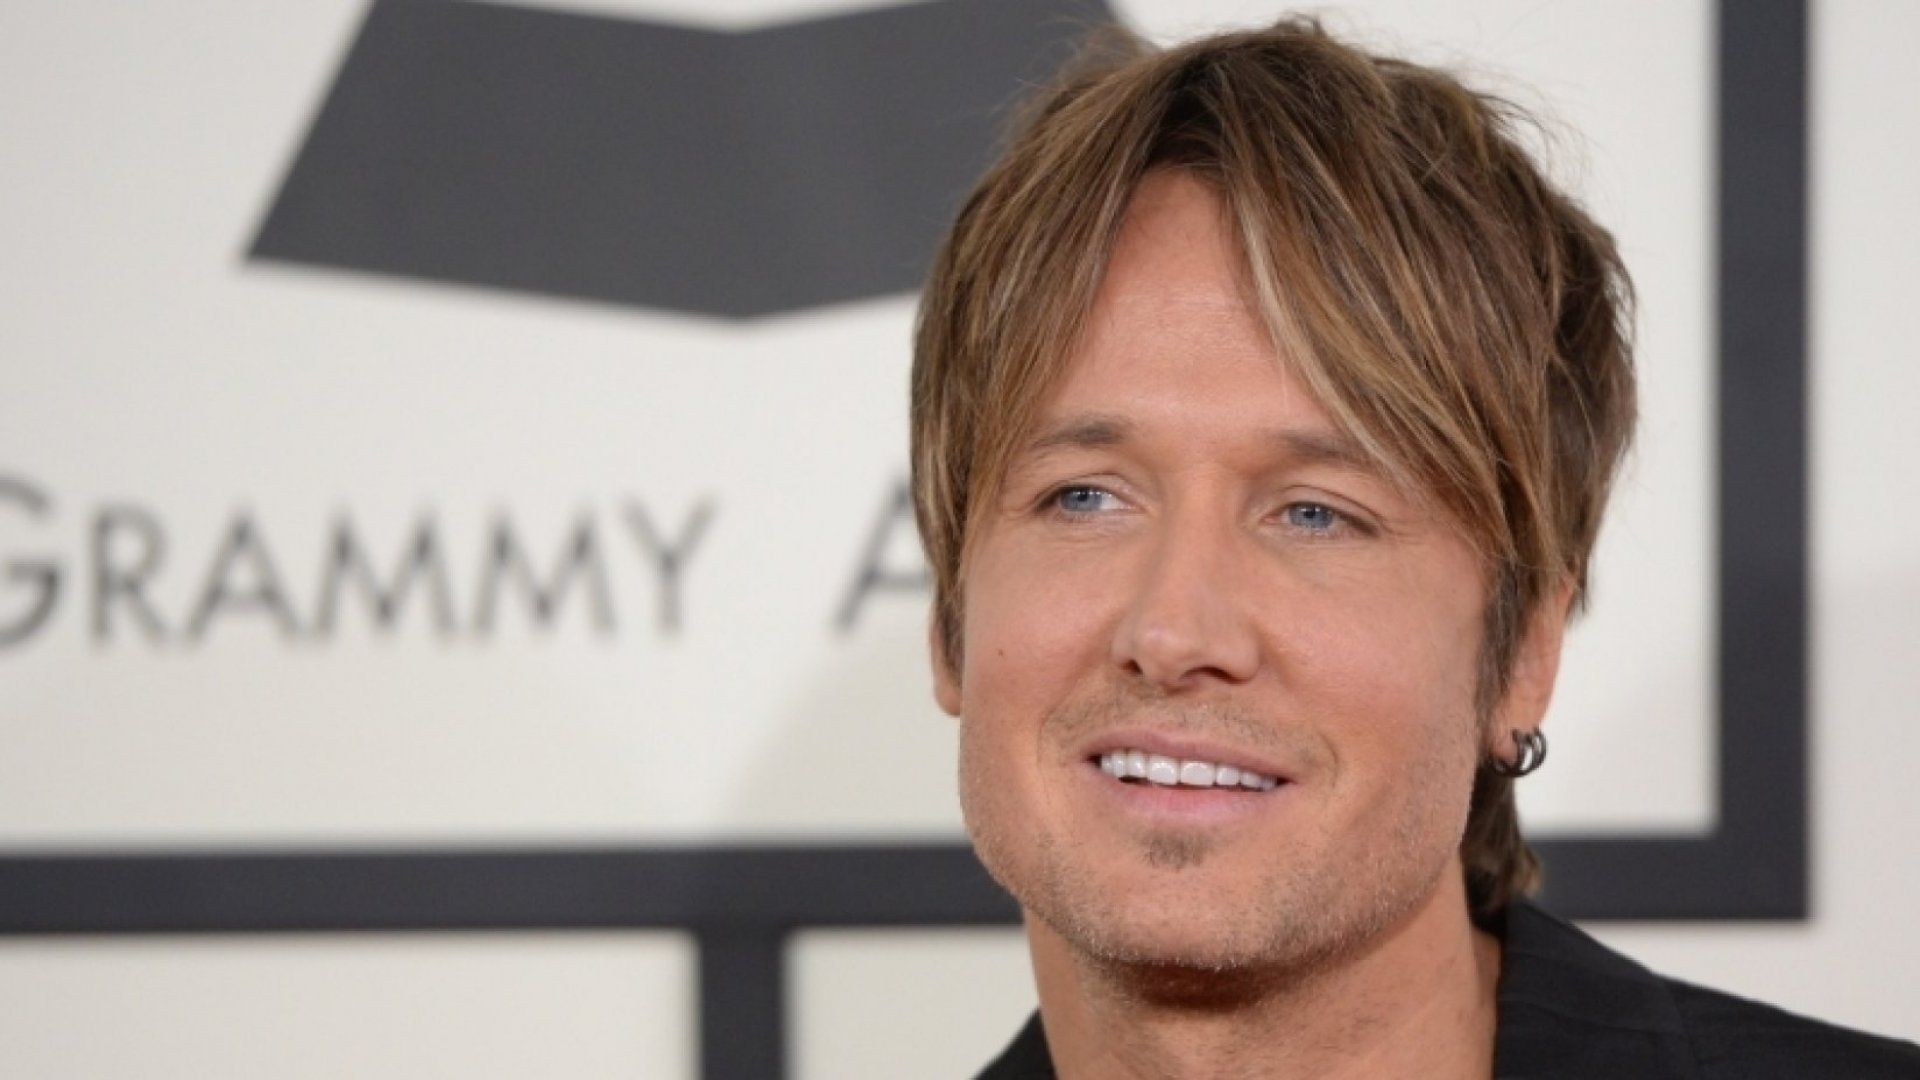 Lessons on Leadership from Keith Urban